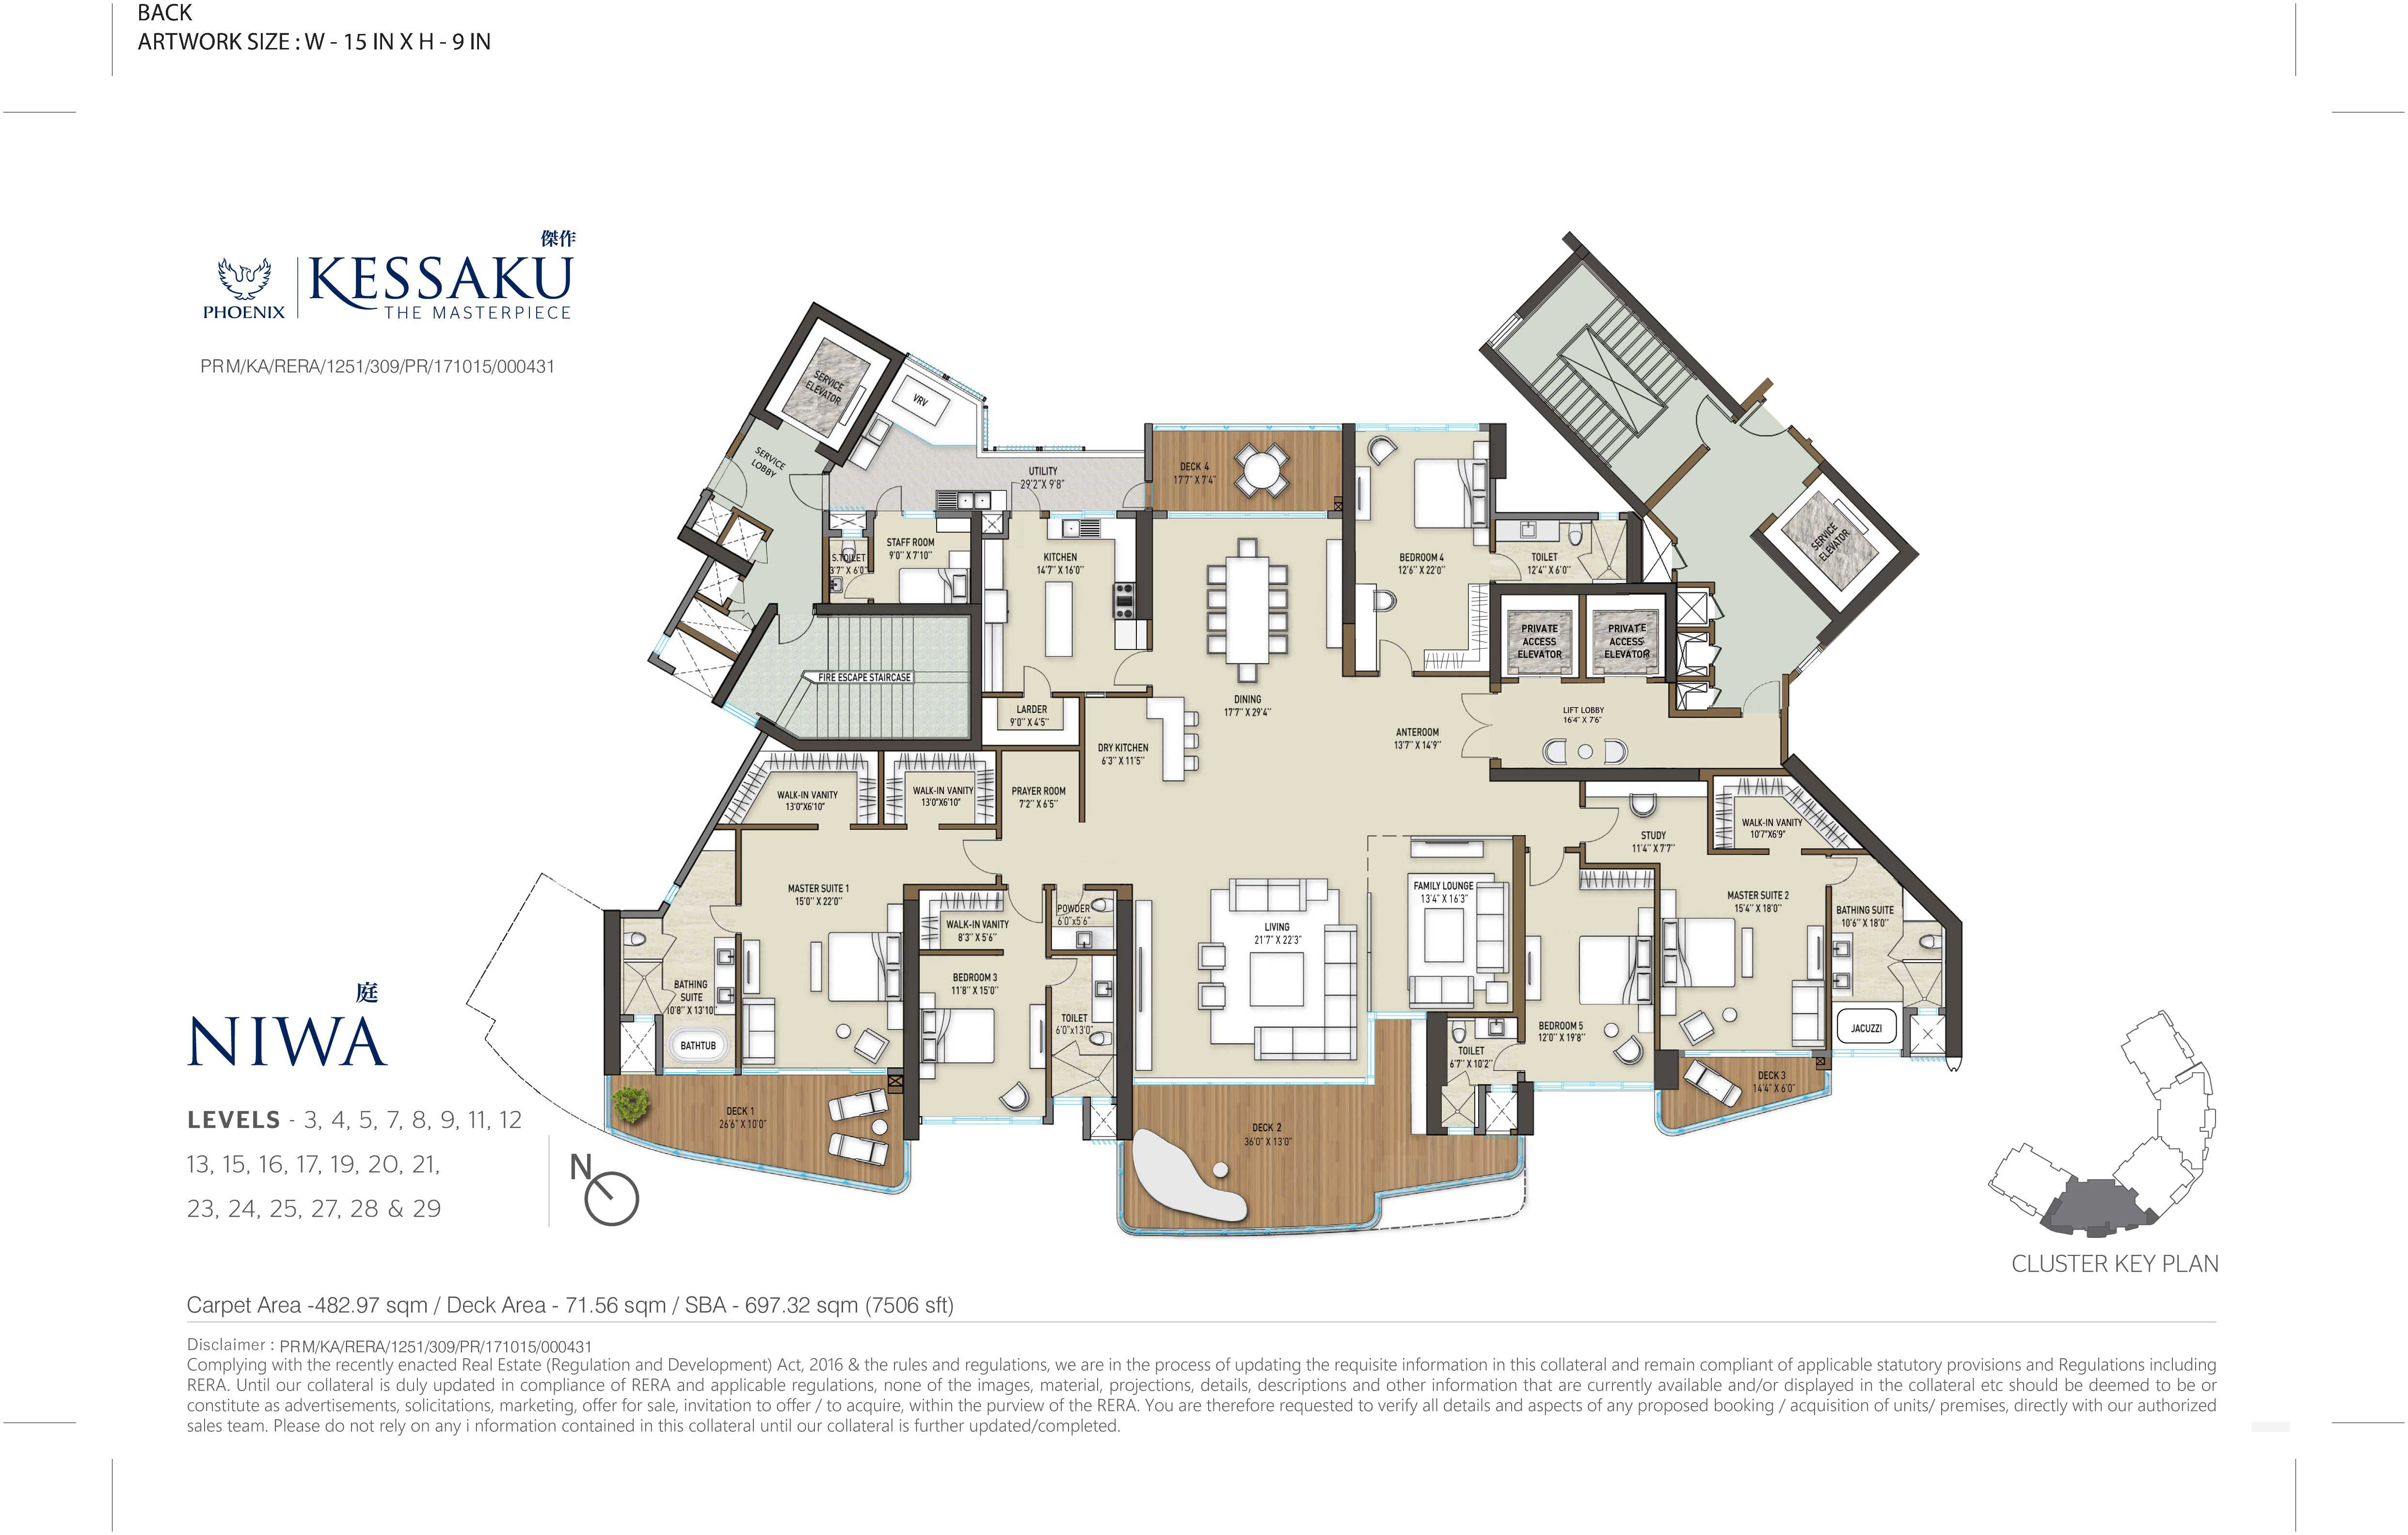 5 bhk ultra luxury flats in Bangalore